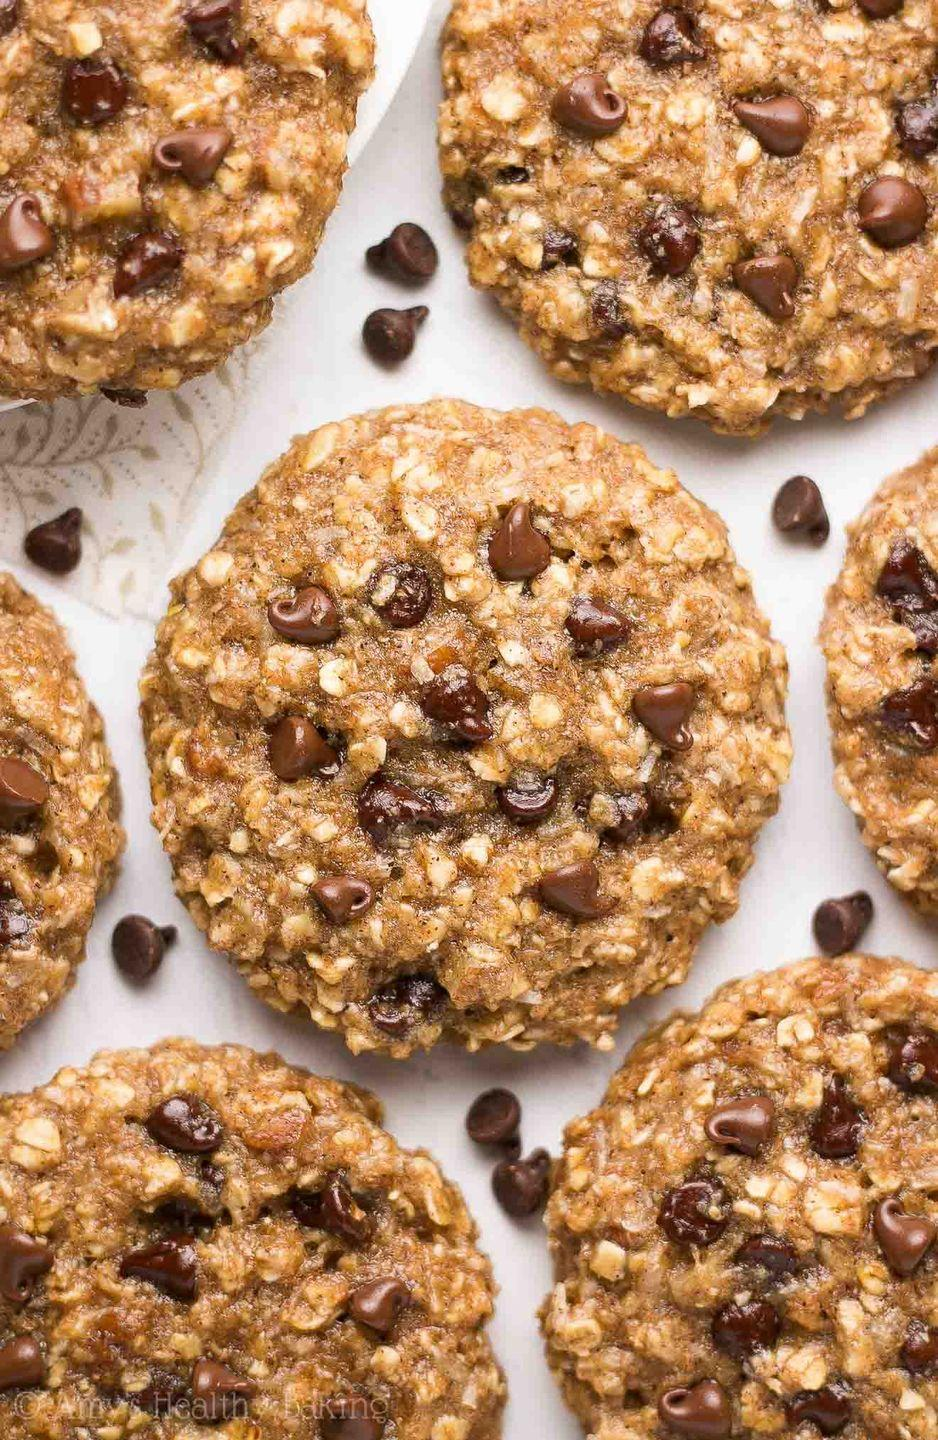 """<p>Bored of typical chocolate chip? Follow the lead of Wyoming locals and make these chewy oatmeal numbers, packed with coconut, pecans and chocolate chips.</p><p>Get the recipe from <a href=""""https://amyshealthybaking.com/blog/2017/05/30/healthy-classic-cowboy-cookies/"""" rel=""""nofollow noopener"""" target=""""_blank"""" data-ylk=""""slk:Amy's Healthy Baking"""" class=""""link rapid-noclick-resp"""">Amy's Healthy Baking</a>.</p>"""